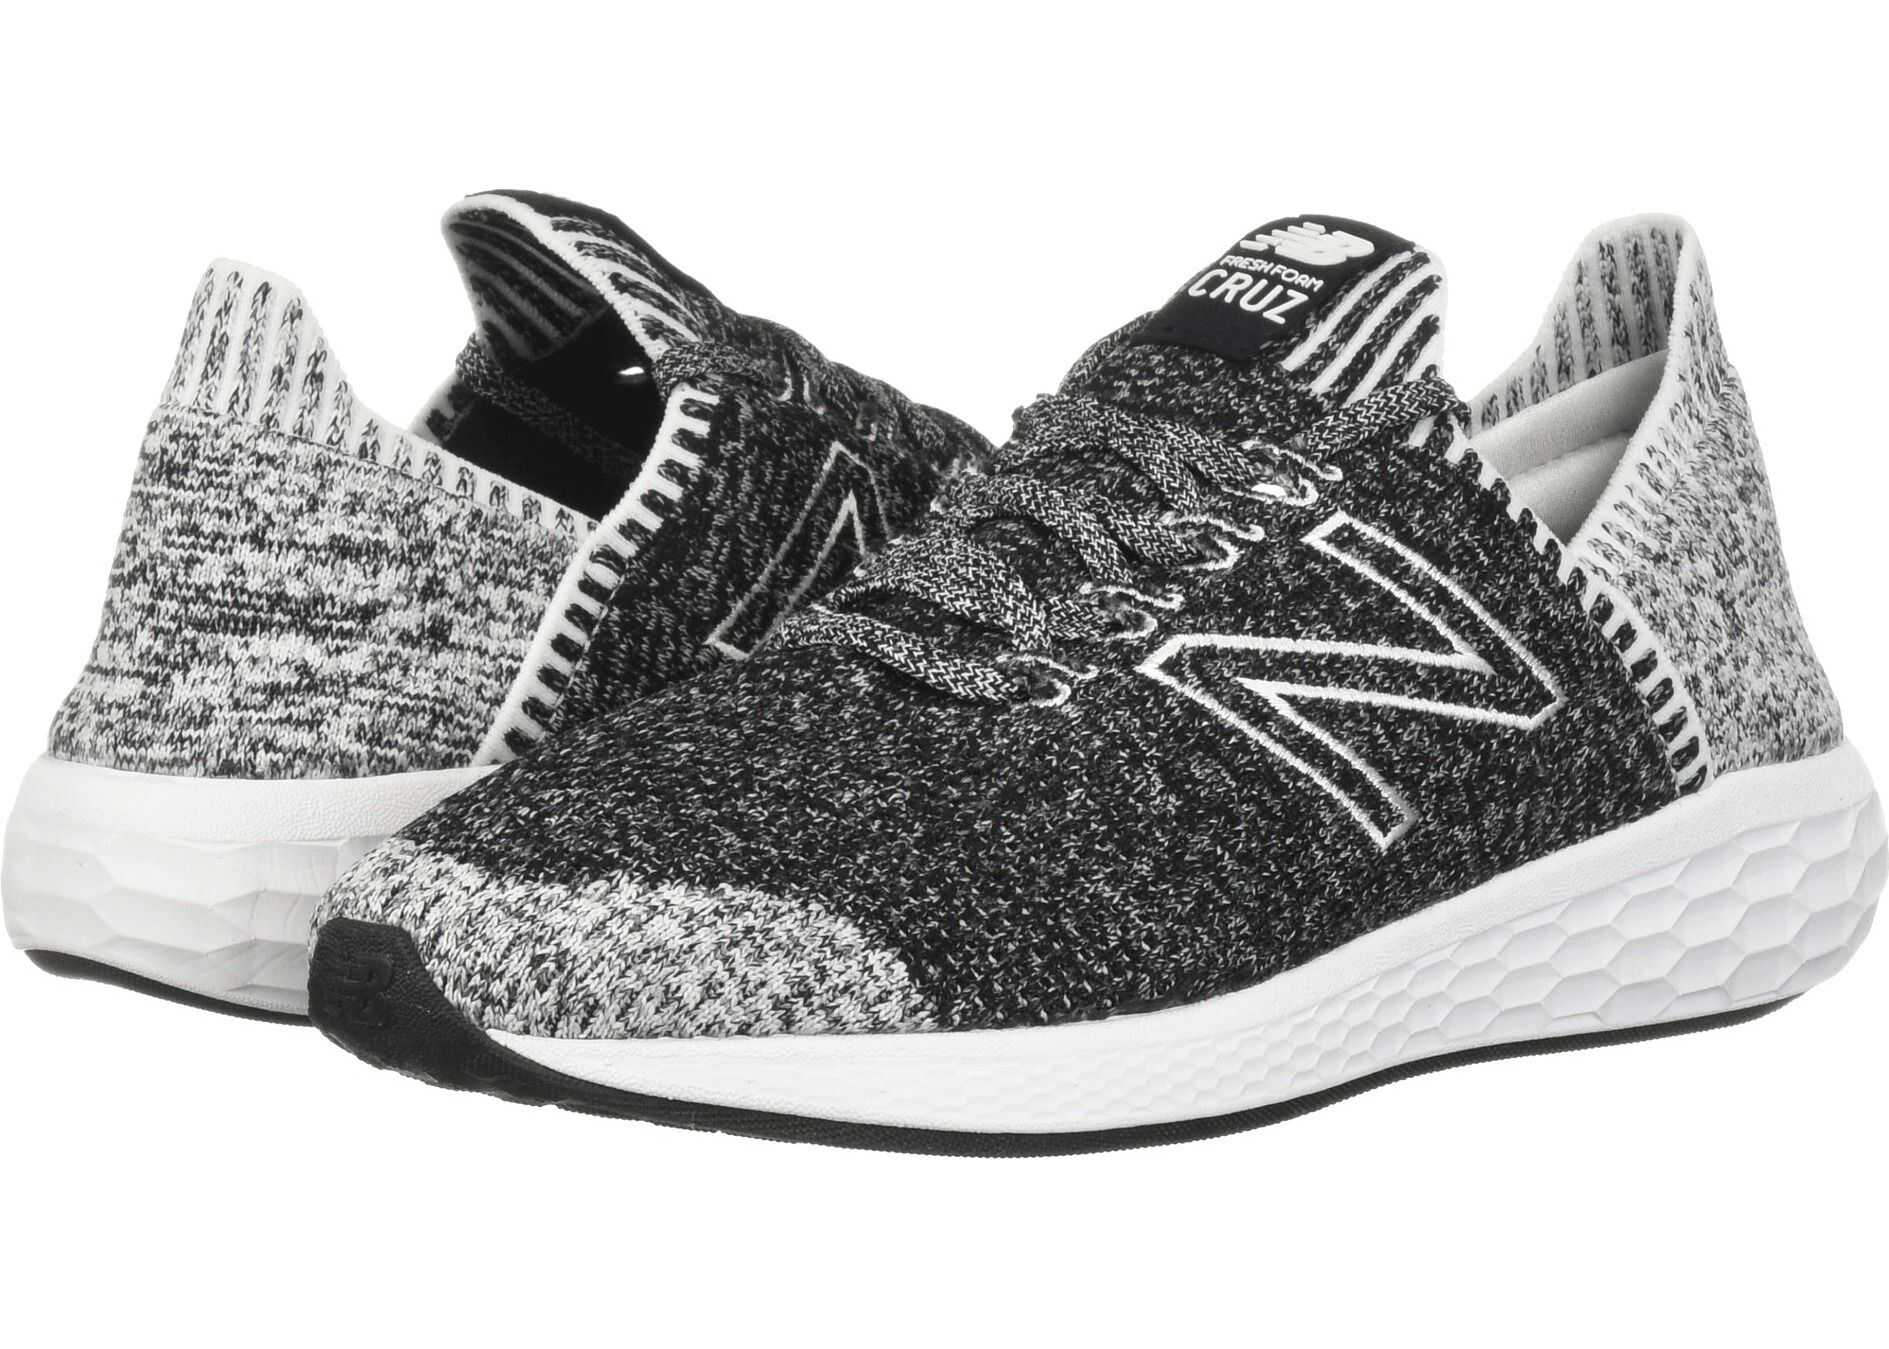 New Balance Fresh Foam Cruz v2 Sock Fit Black/White